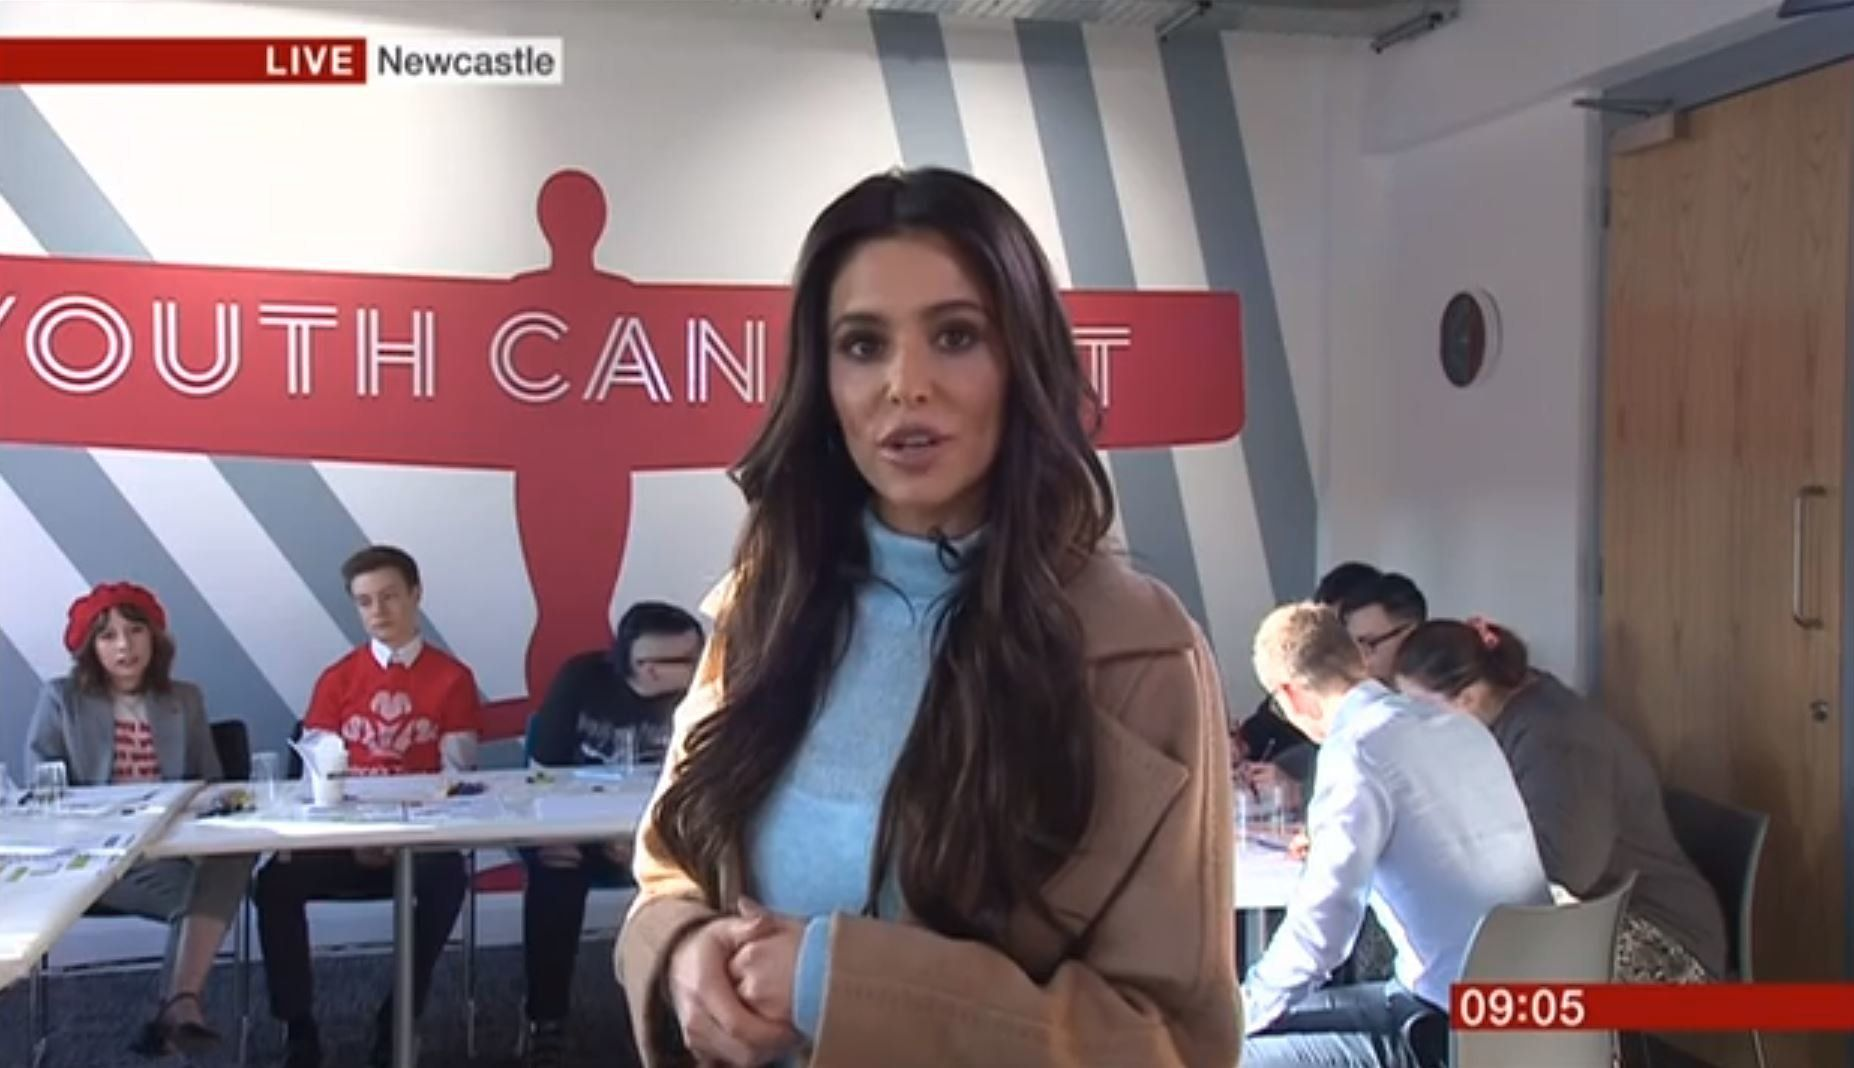 Cheryl Expertly Swerves Question About Personal Life On 'BBC Breakfast', Amid Liam Payne Split